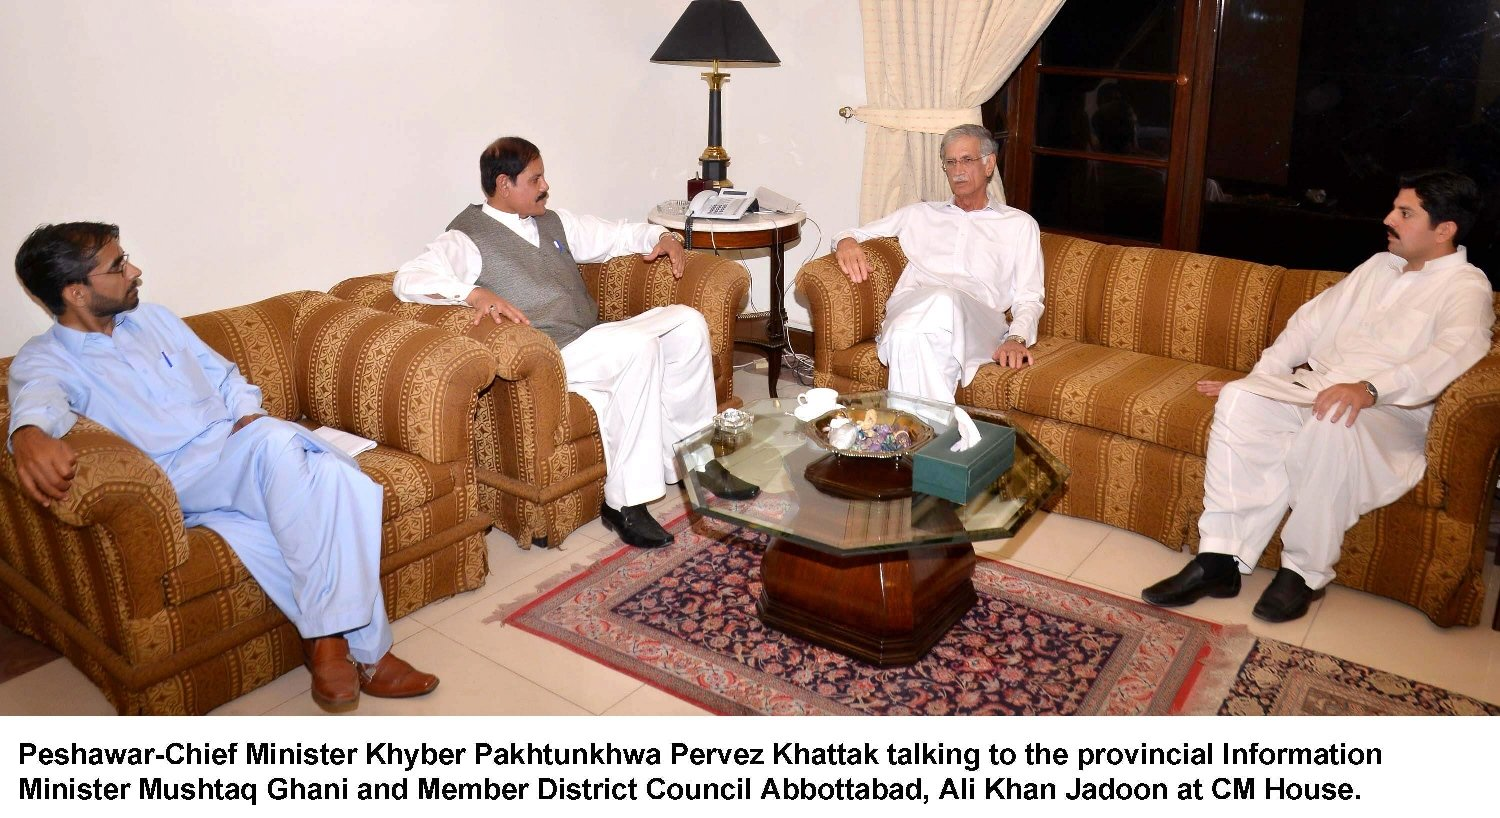 pervez khattak in a meeting with k p information minister mushtaq ghani among others at the cm house in peshawar on friday june 26 2015 photo express